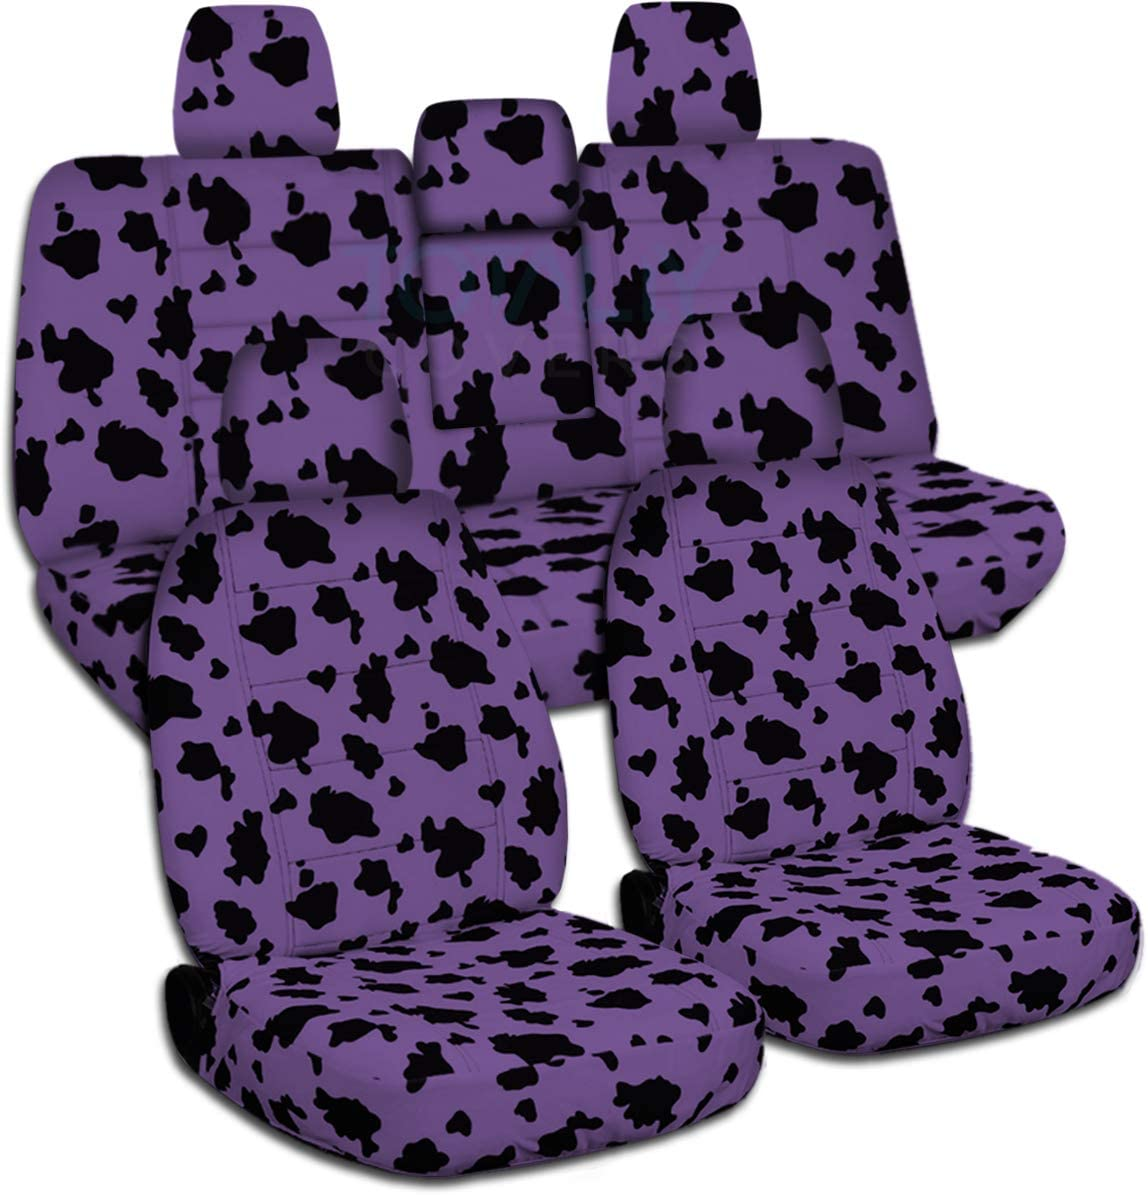 Totally Covers Compatible with 2018-2020 Jeep Wrangler JL Animal Print Seat Covers: Purple Cow - Full Set: Front & Rear (29 Prints) 2-Door/4-Door Solid/Split Bench Back w/wo Armrest/Headrest